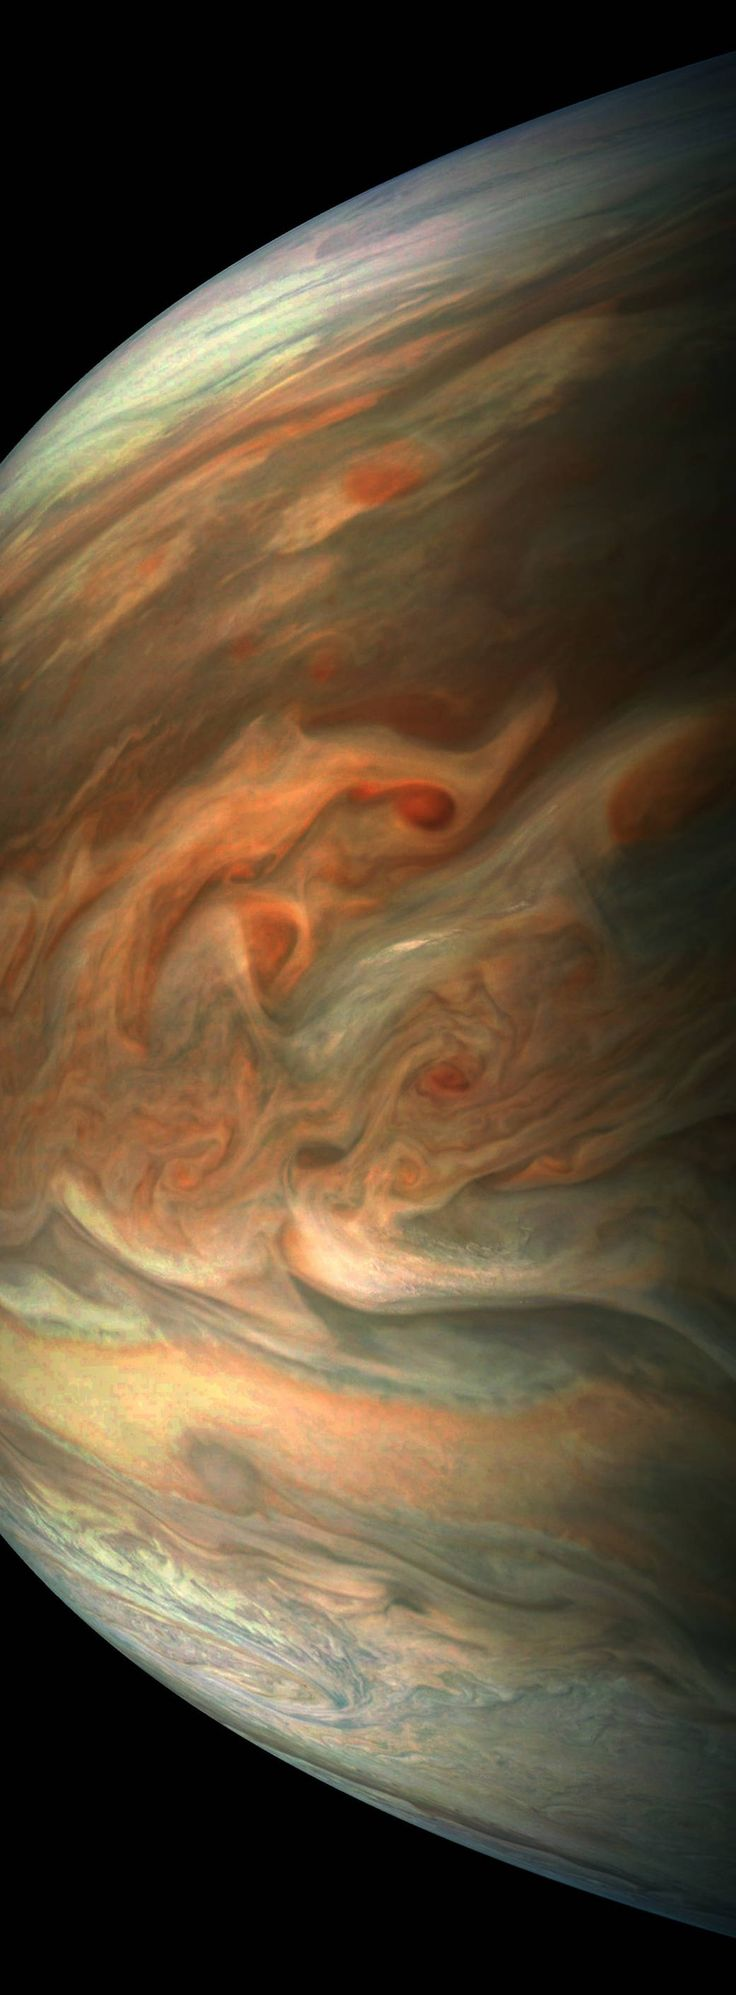 This striking image of Jupiter was captured by NASA's Juno spacecraft as it performed its eighth flyby of the gas giant planet.    The image was taken on Sept. 1, 2017 at 2:58 p.m. PDT (5:58 p.m. EDT). At the time the image was taken, the spacecraft was 4,707 miles (7,576 kilometers) from the tops of the clouds of the planet at a latitude of about -17.4 degrees.